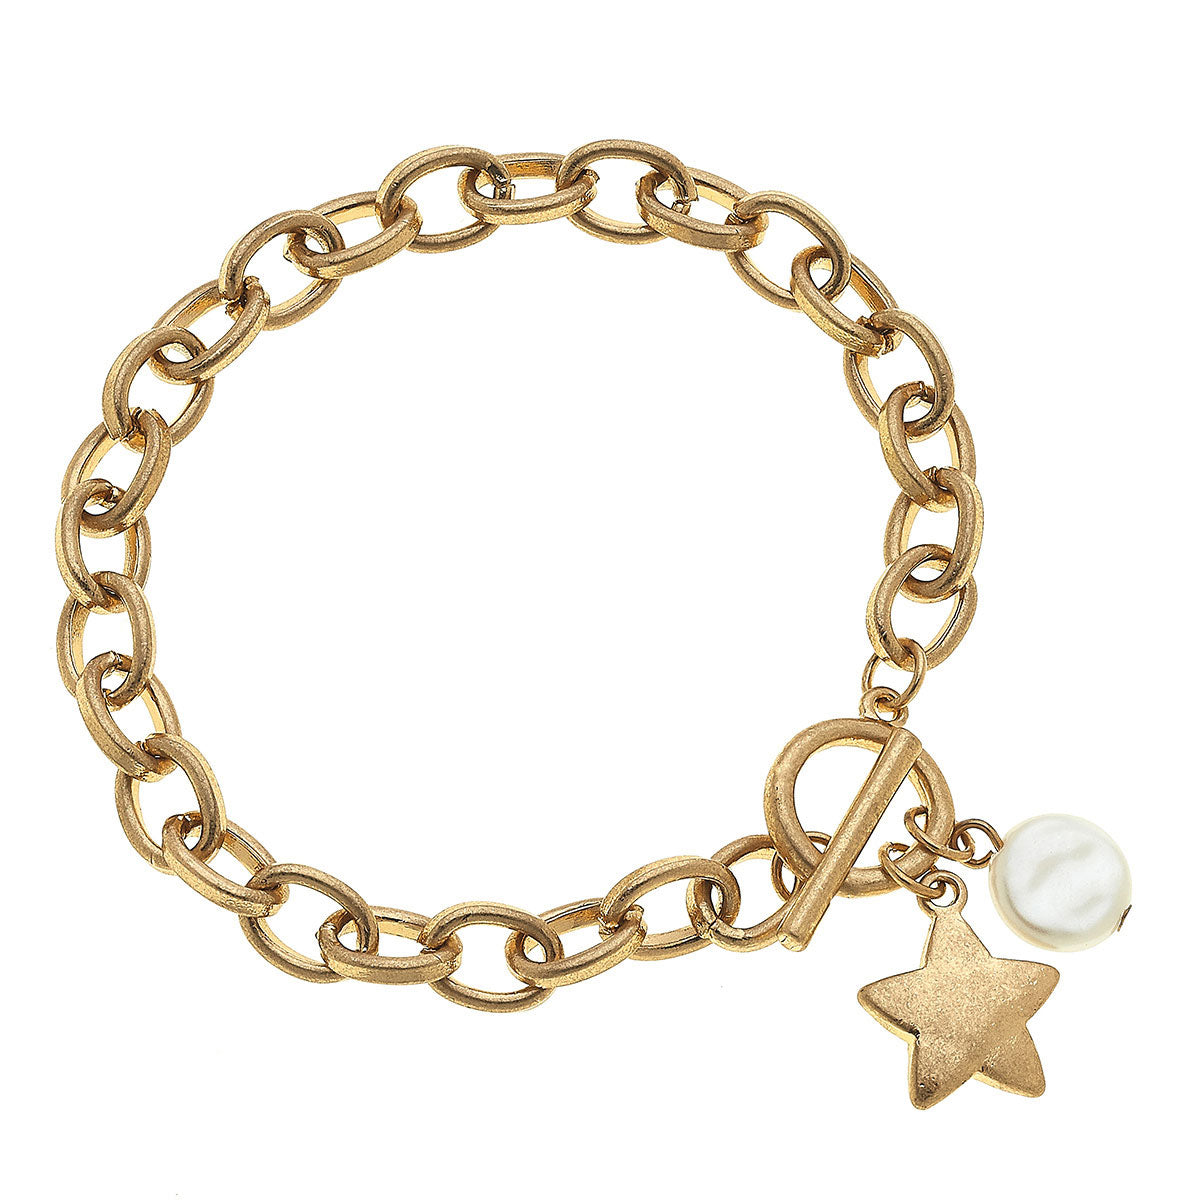 Claudia Star T-Bar Charm Bracelet in Worn Gold